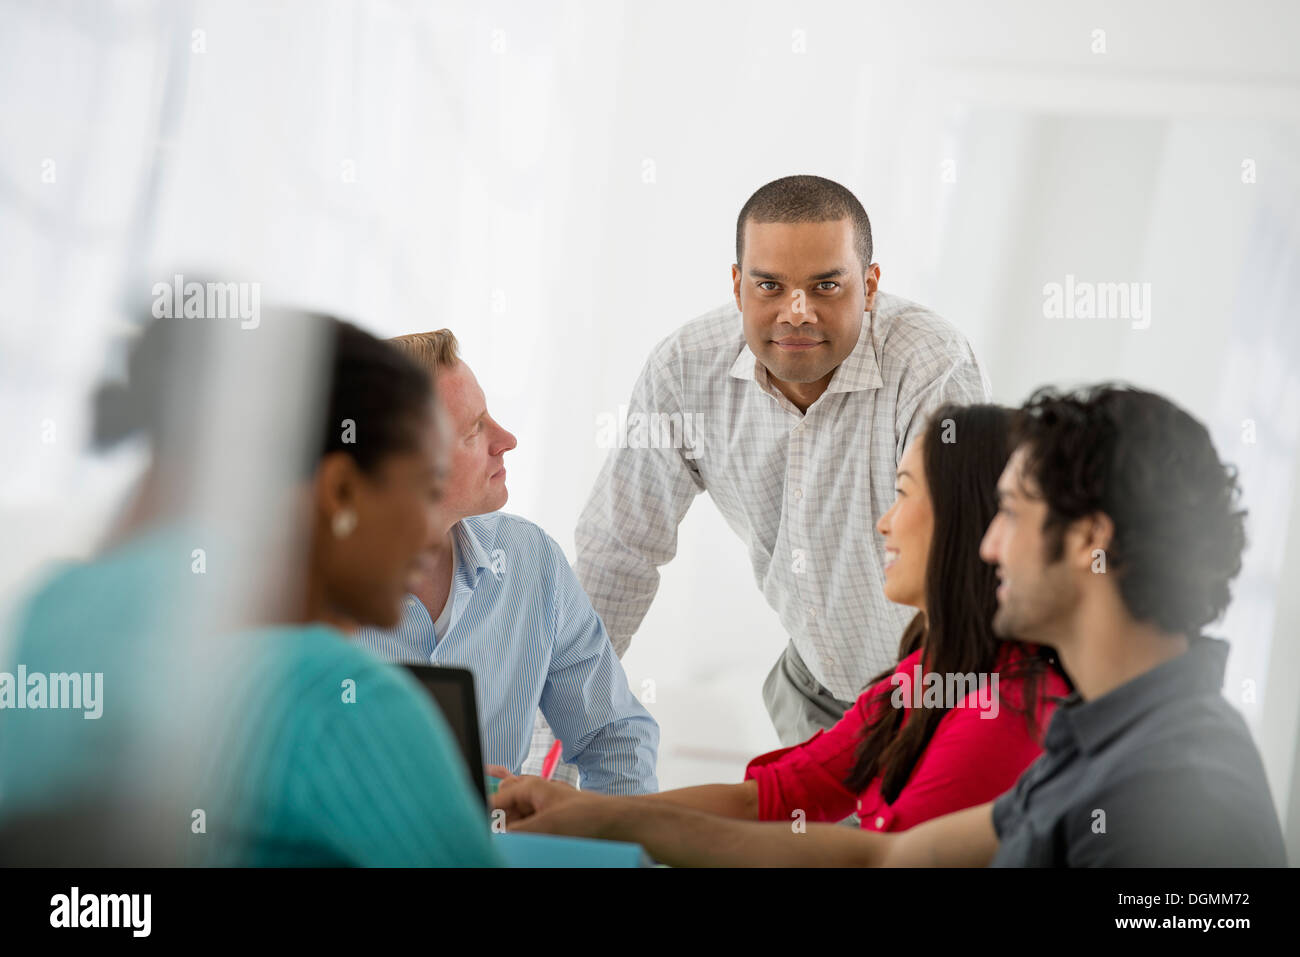 A multi ethnic group of people around a table, men and women. Teamwork. Meeting. - Stock Image